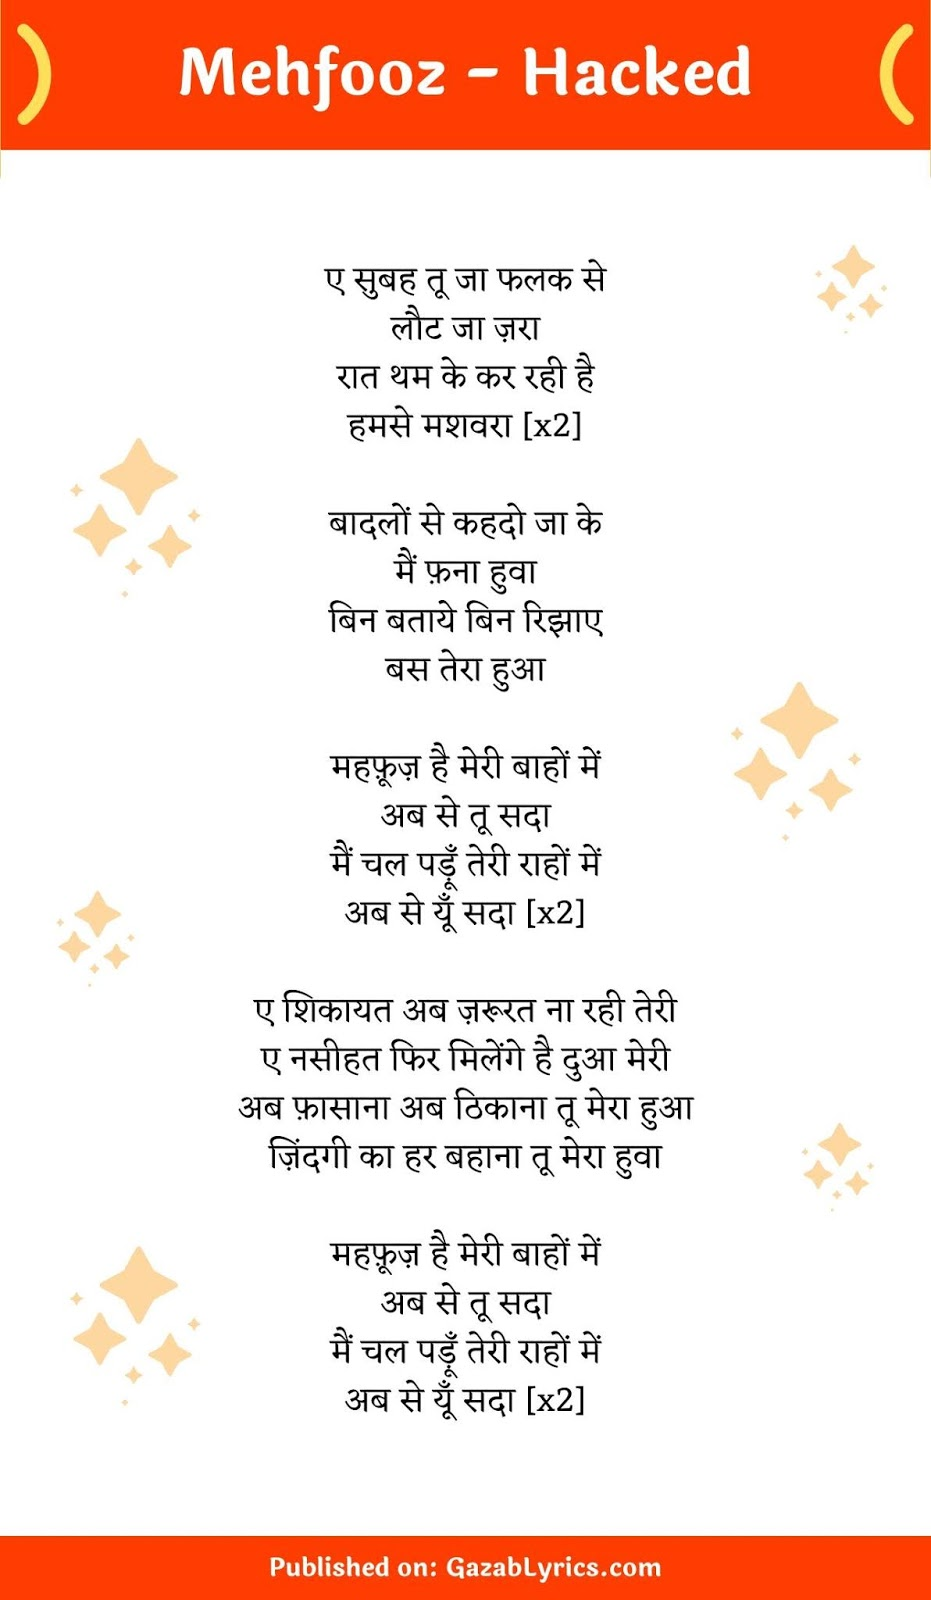 Mehfooz song lyrics image